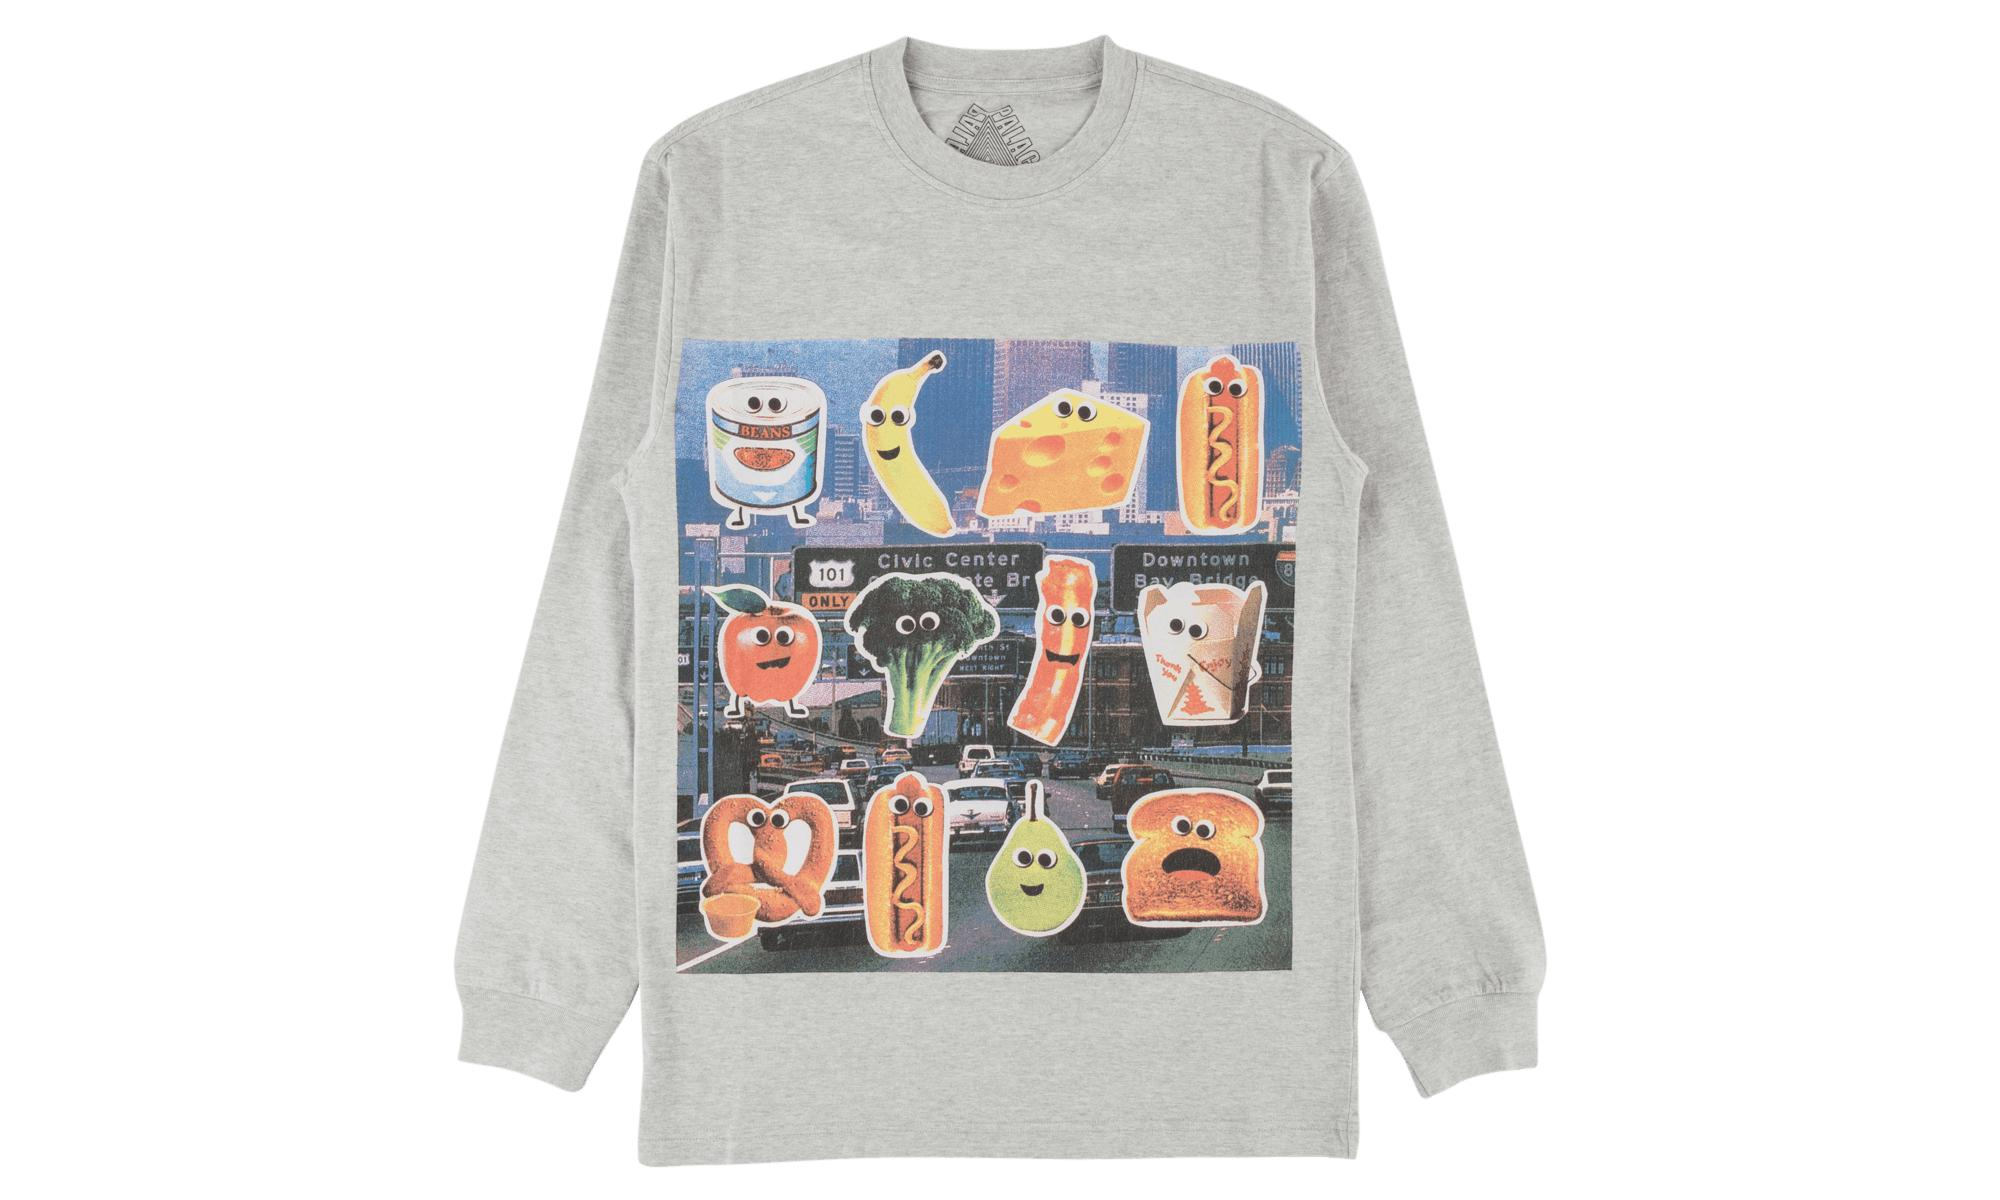 dc039c40a02c Lyst - Palace Payne Longsleeve in Gray for Men